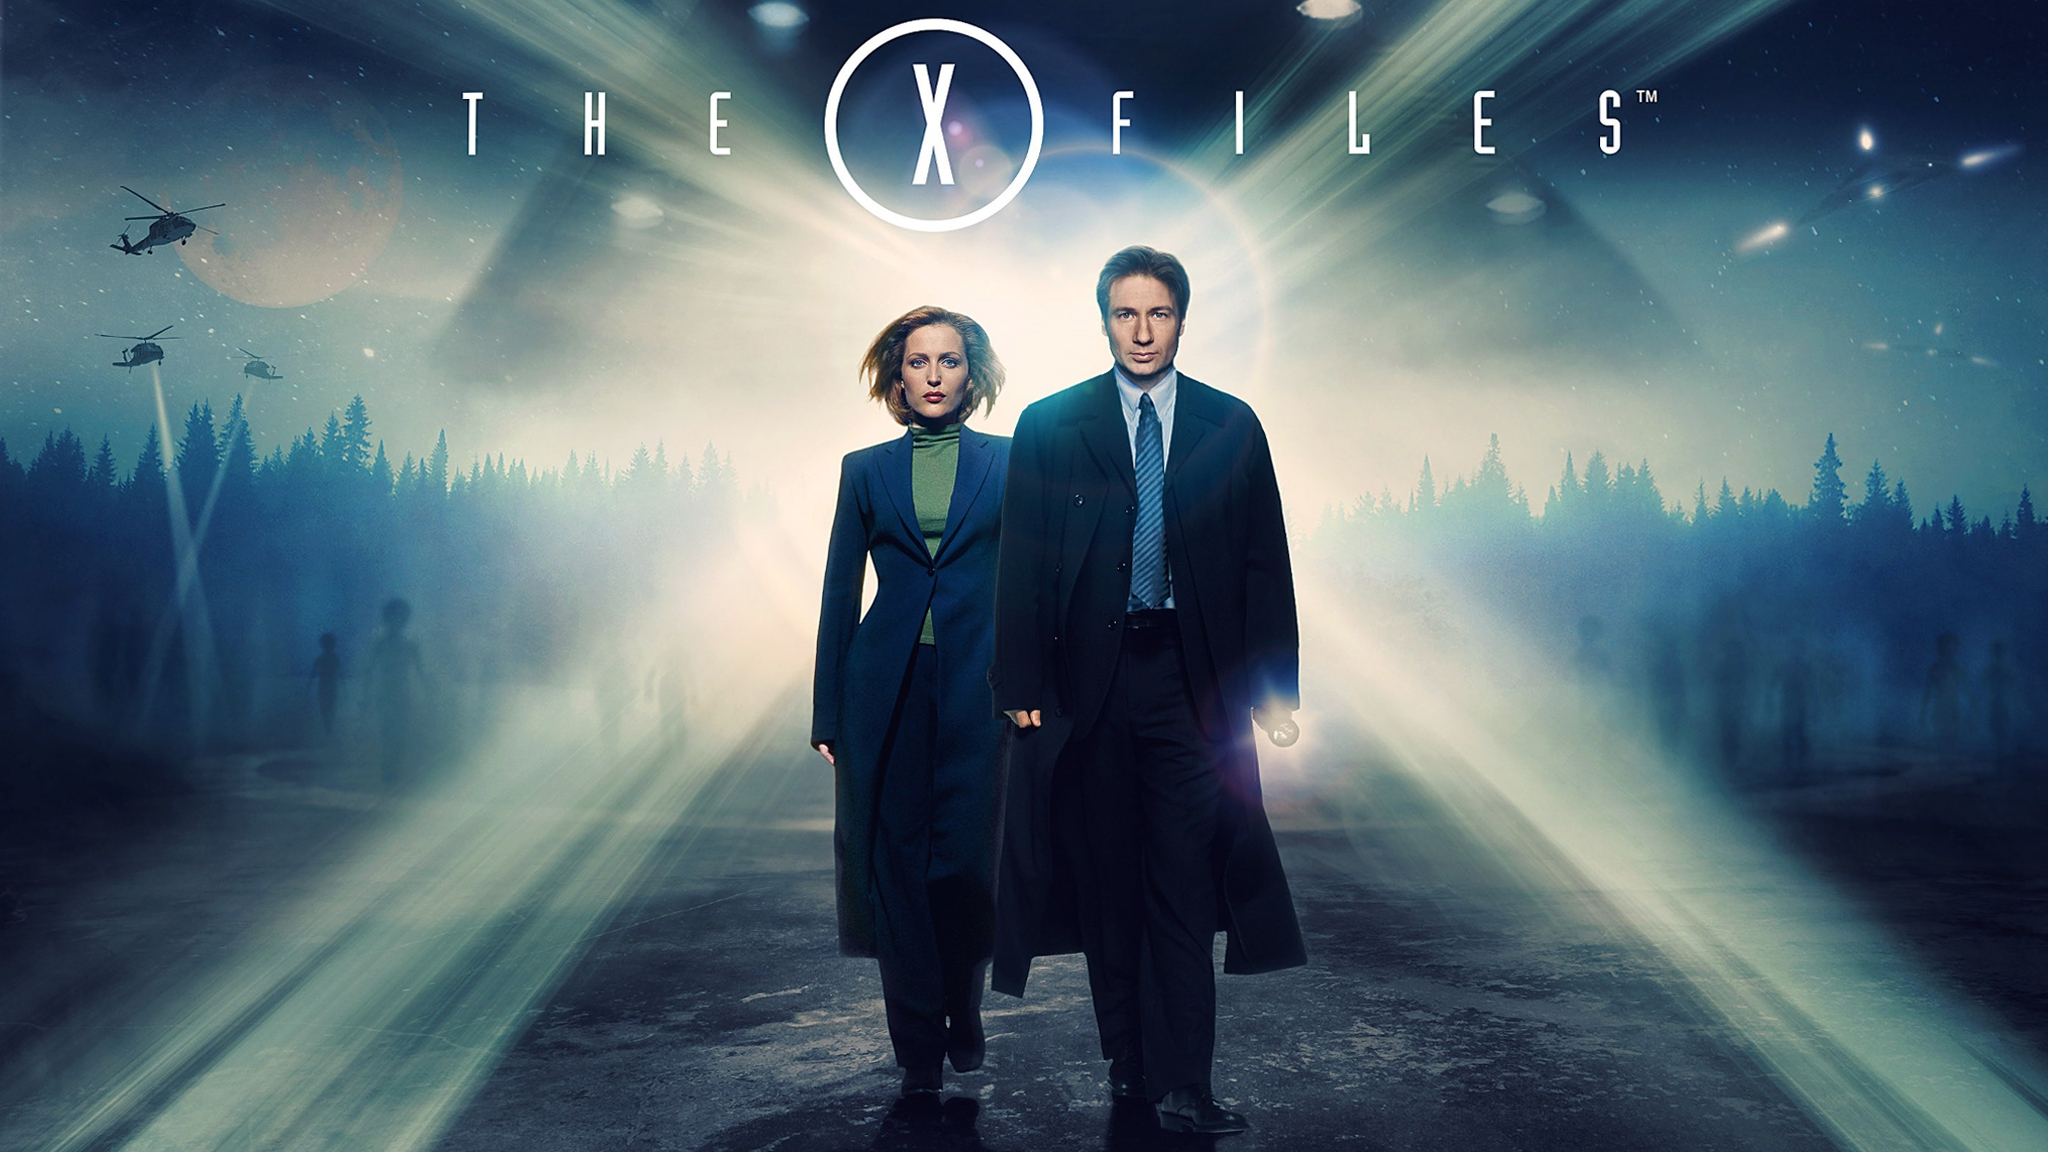 The X Files Wallpapers and Background Images   stmednet 2048x1152